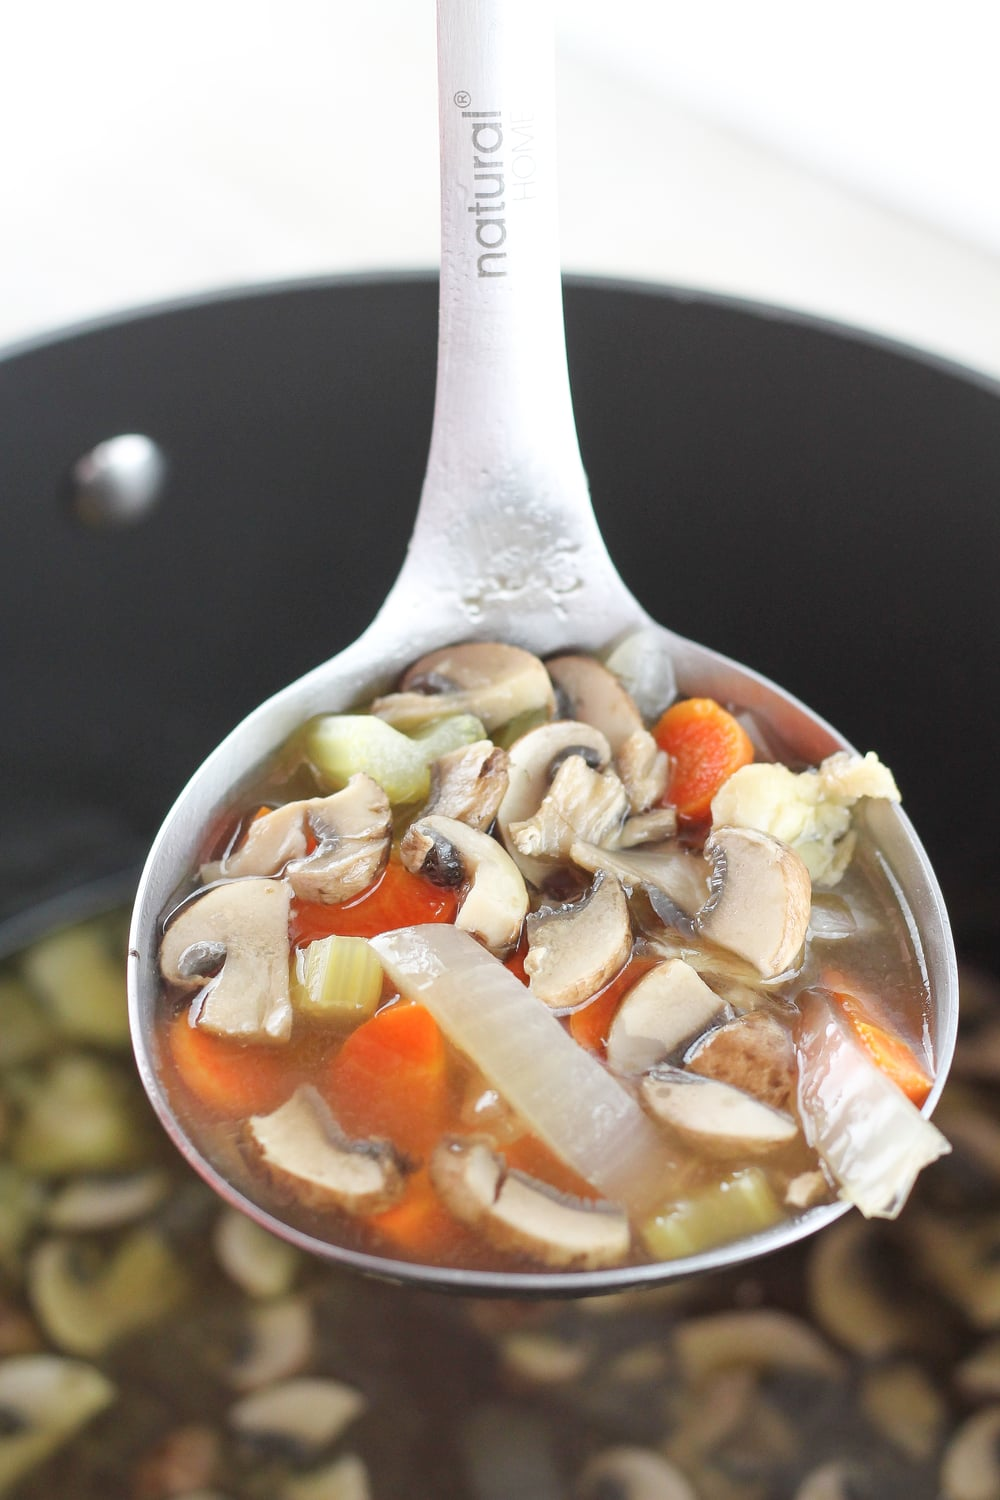 Grain free, gluten free, dairy free, chicken vegetable soup